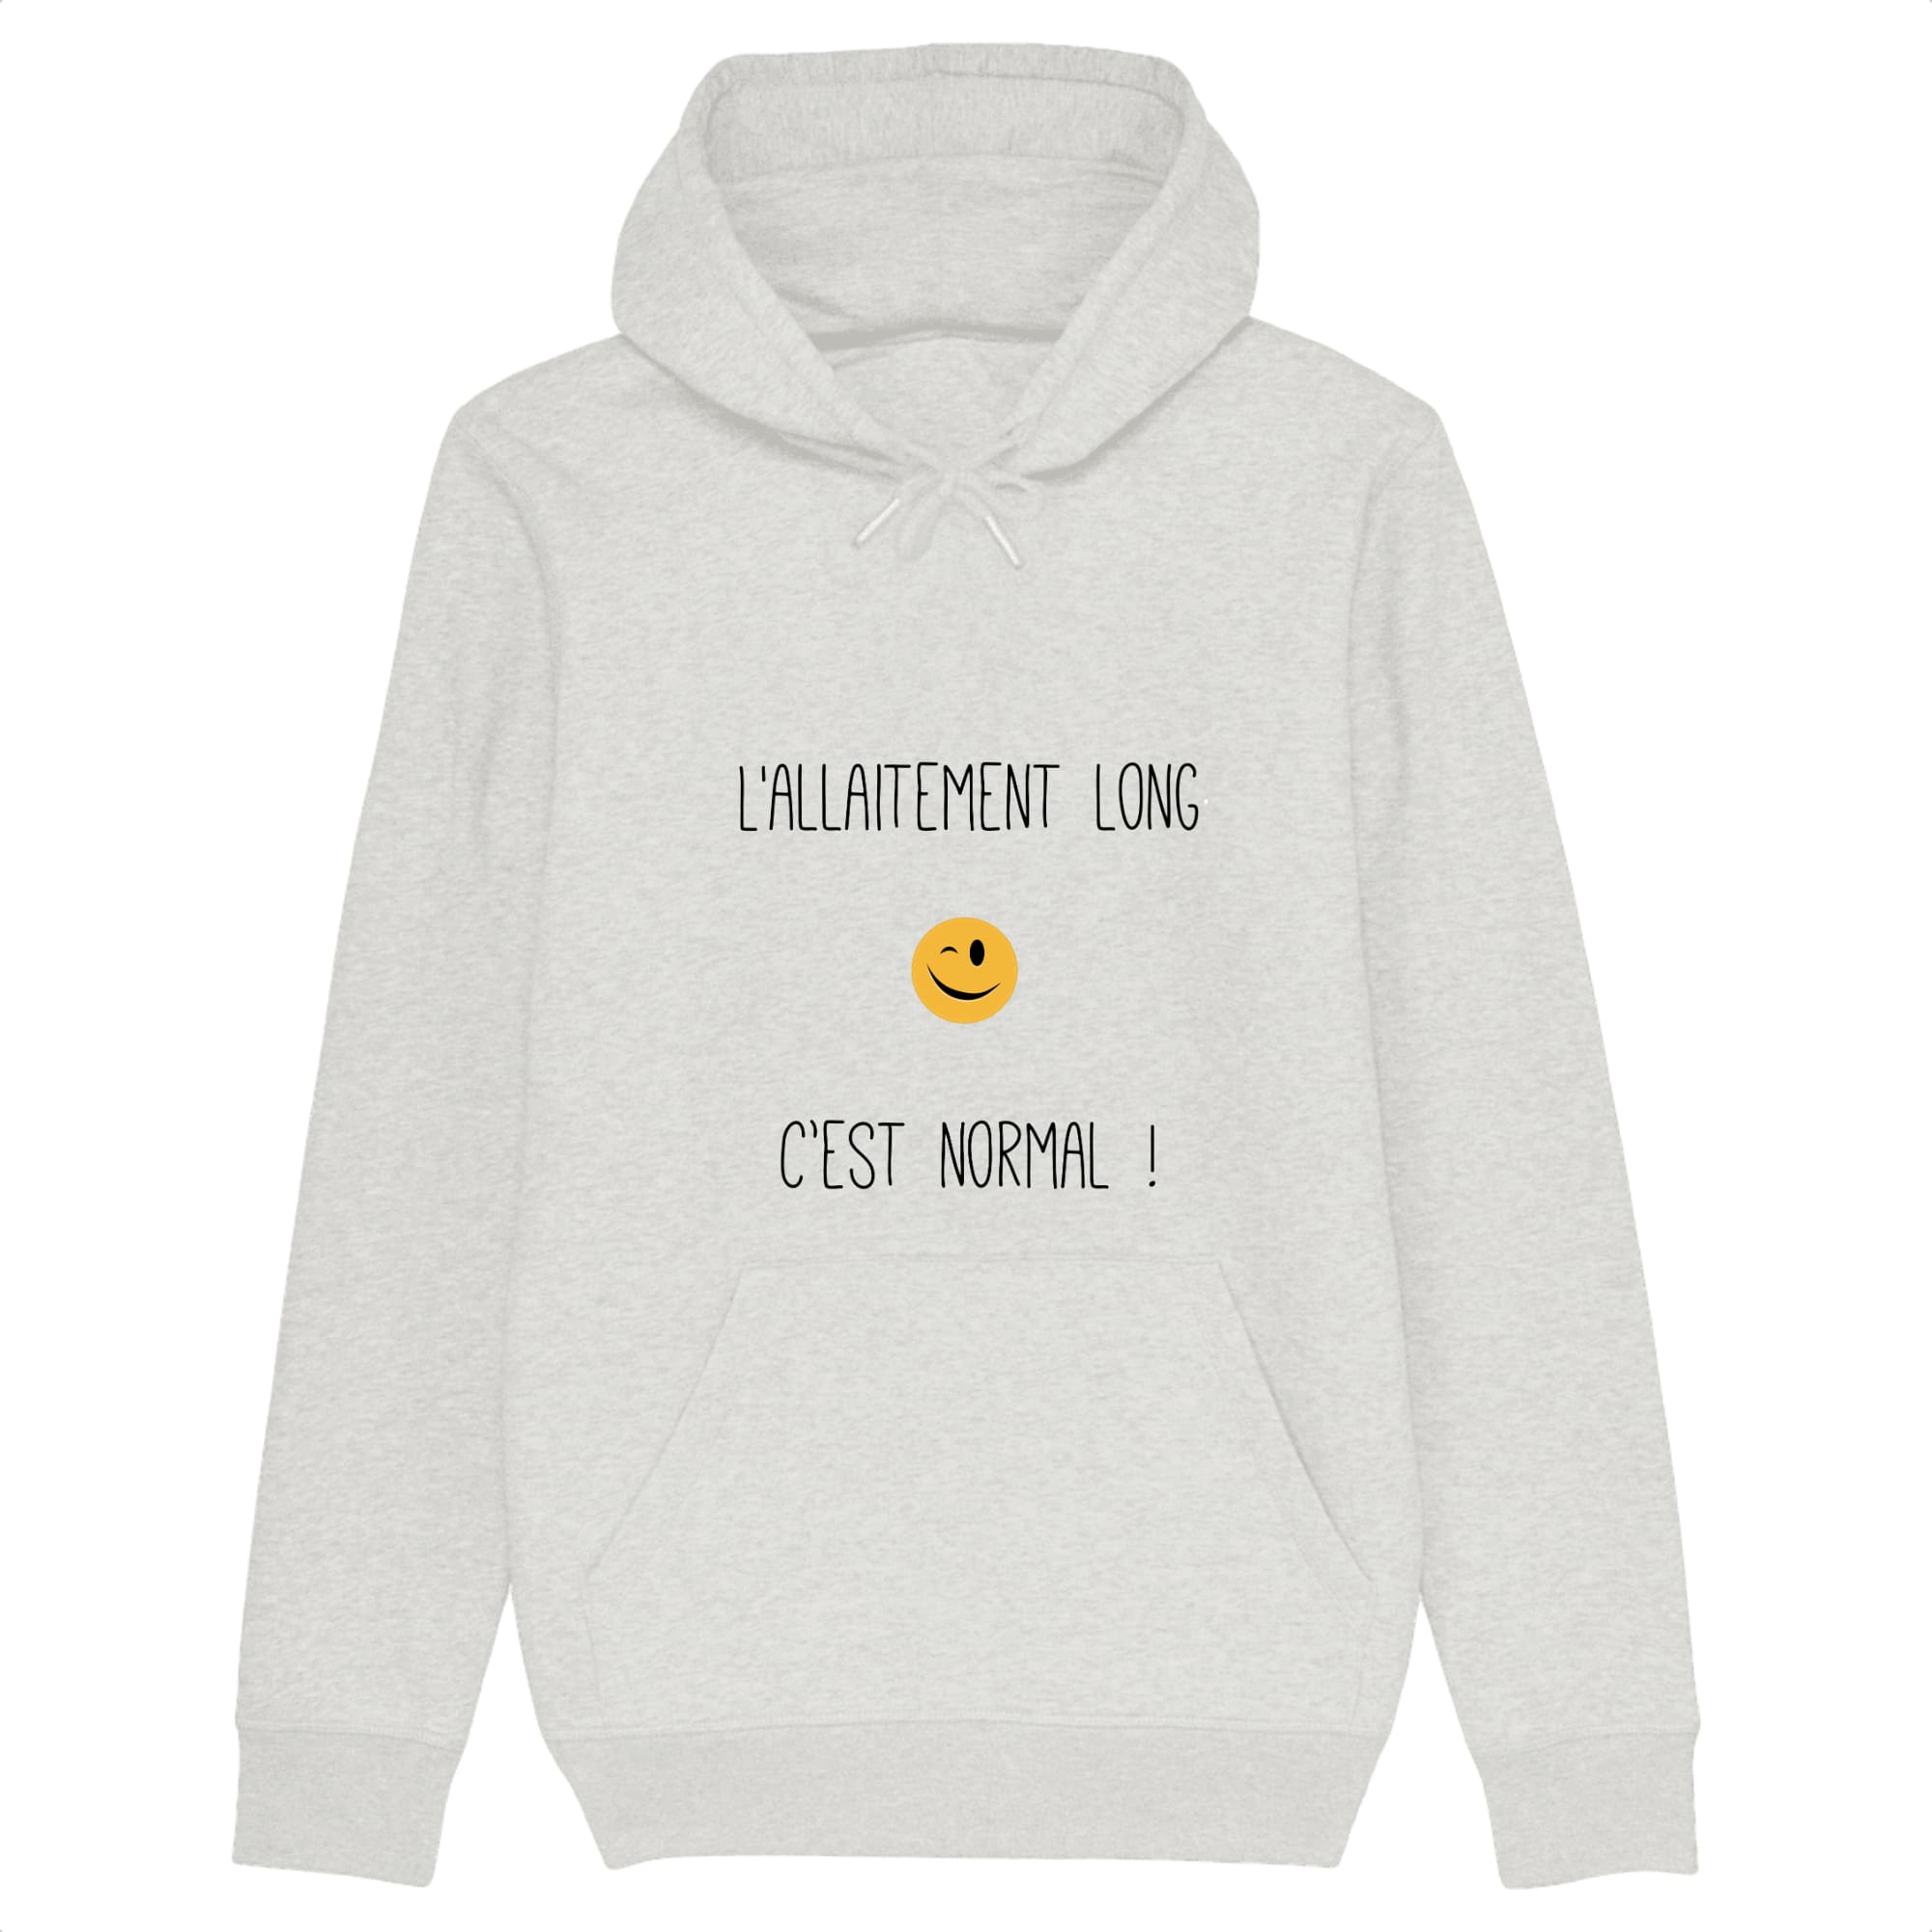 Sweat femme allaitement coton bio Lallaitement long cest normal ! blanc